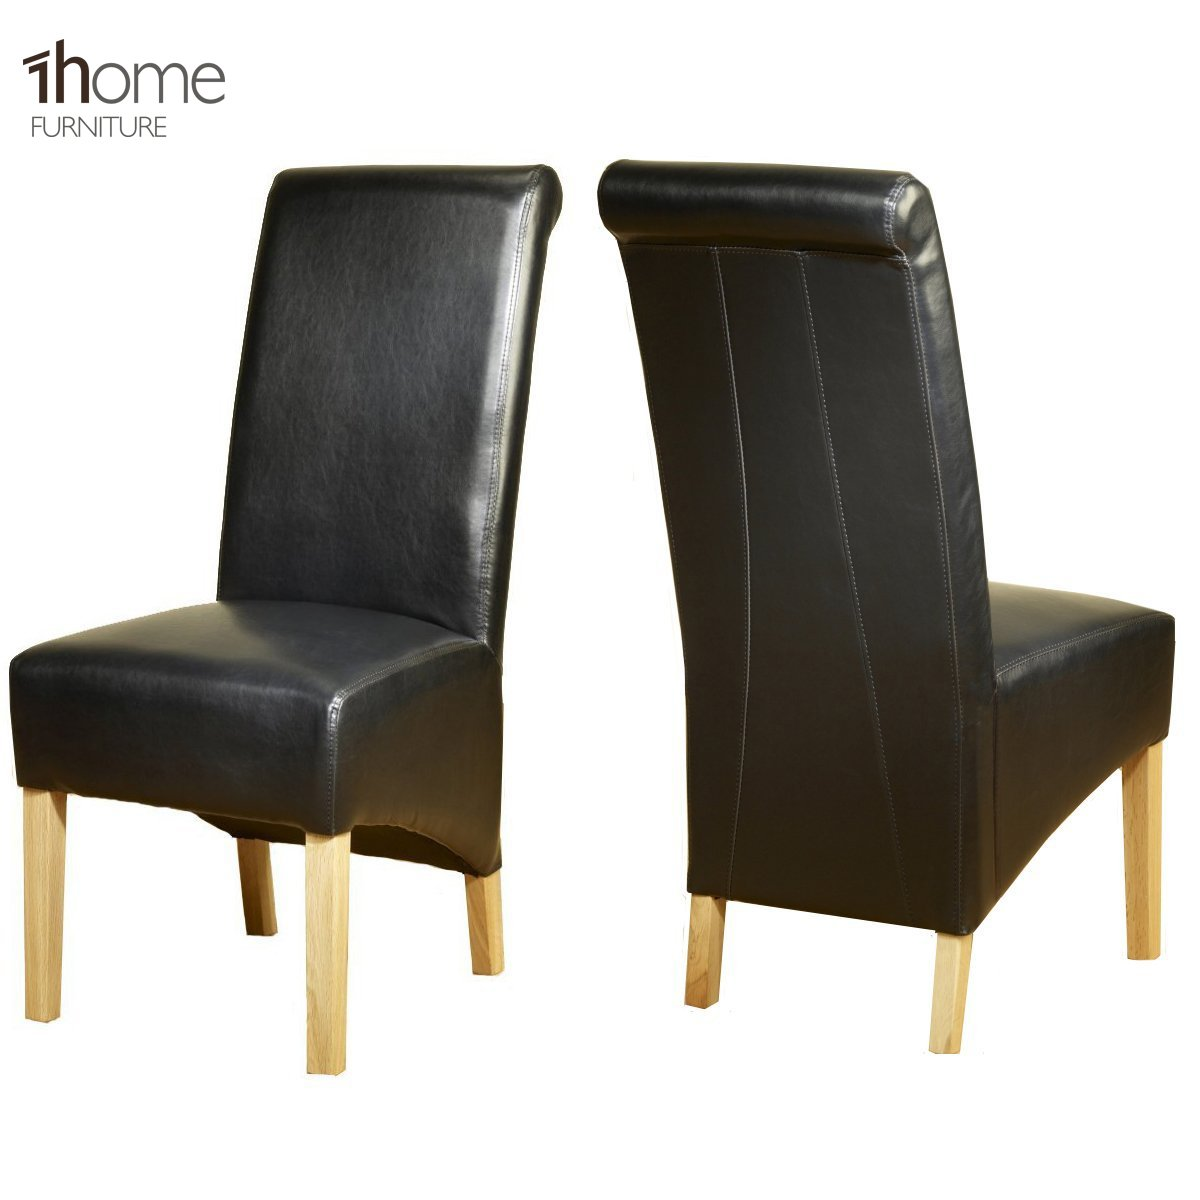 dining chairs brown. 1home Leather Dining Chairs Scroll High Top Back Oak Legs Furniture 1 Pair Black: Amazon.co.uk: Kitchen \u0026 Home Brown E